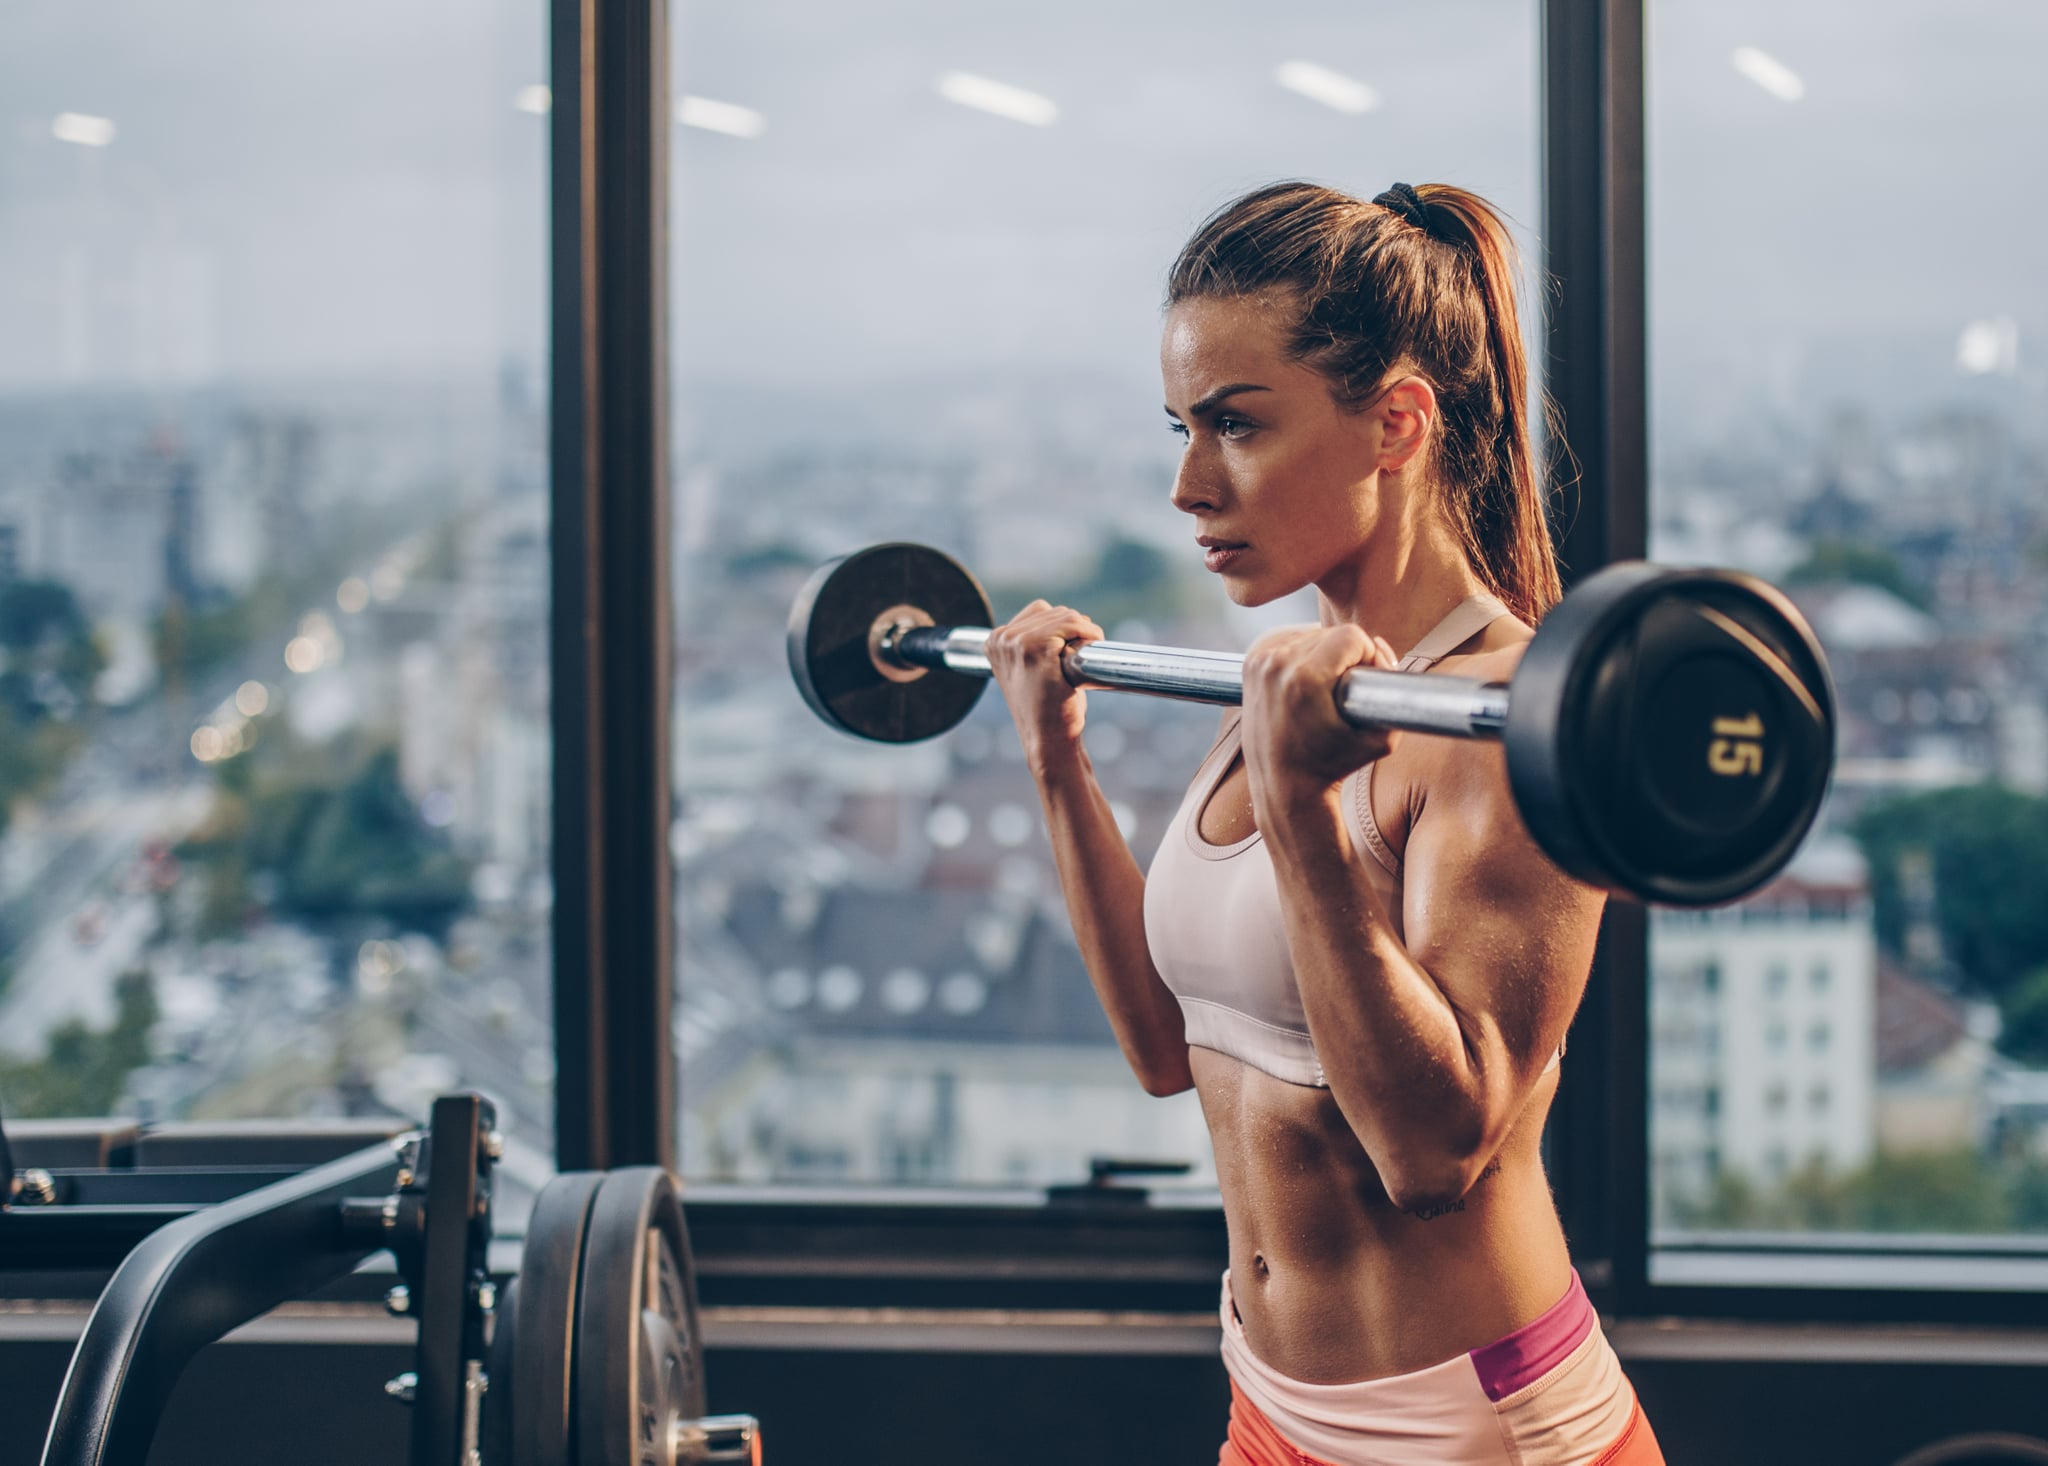 Young muscular build woman exercising with barbell in a gym.